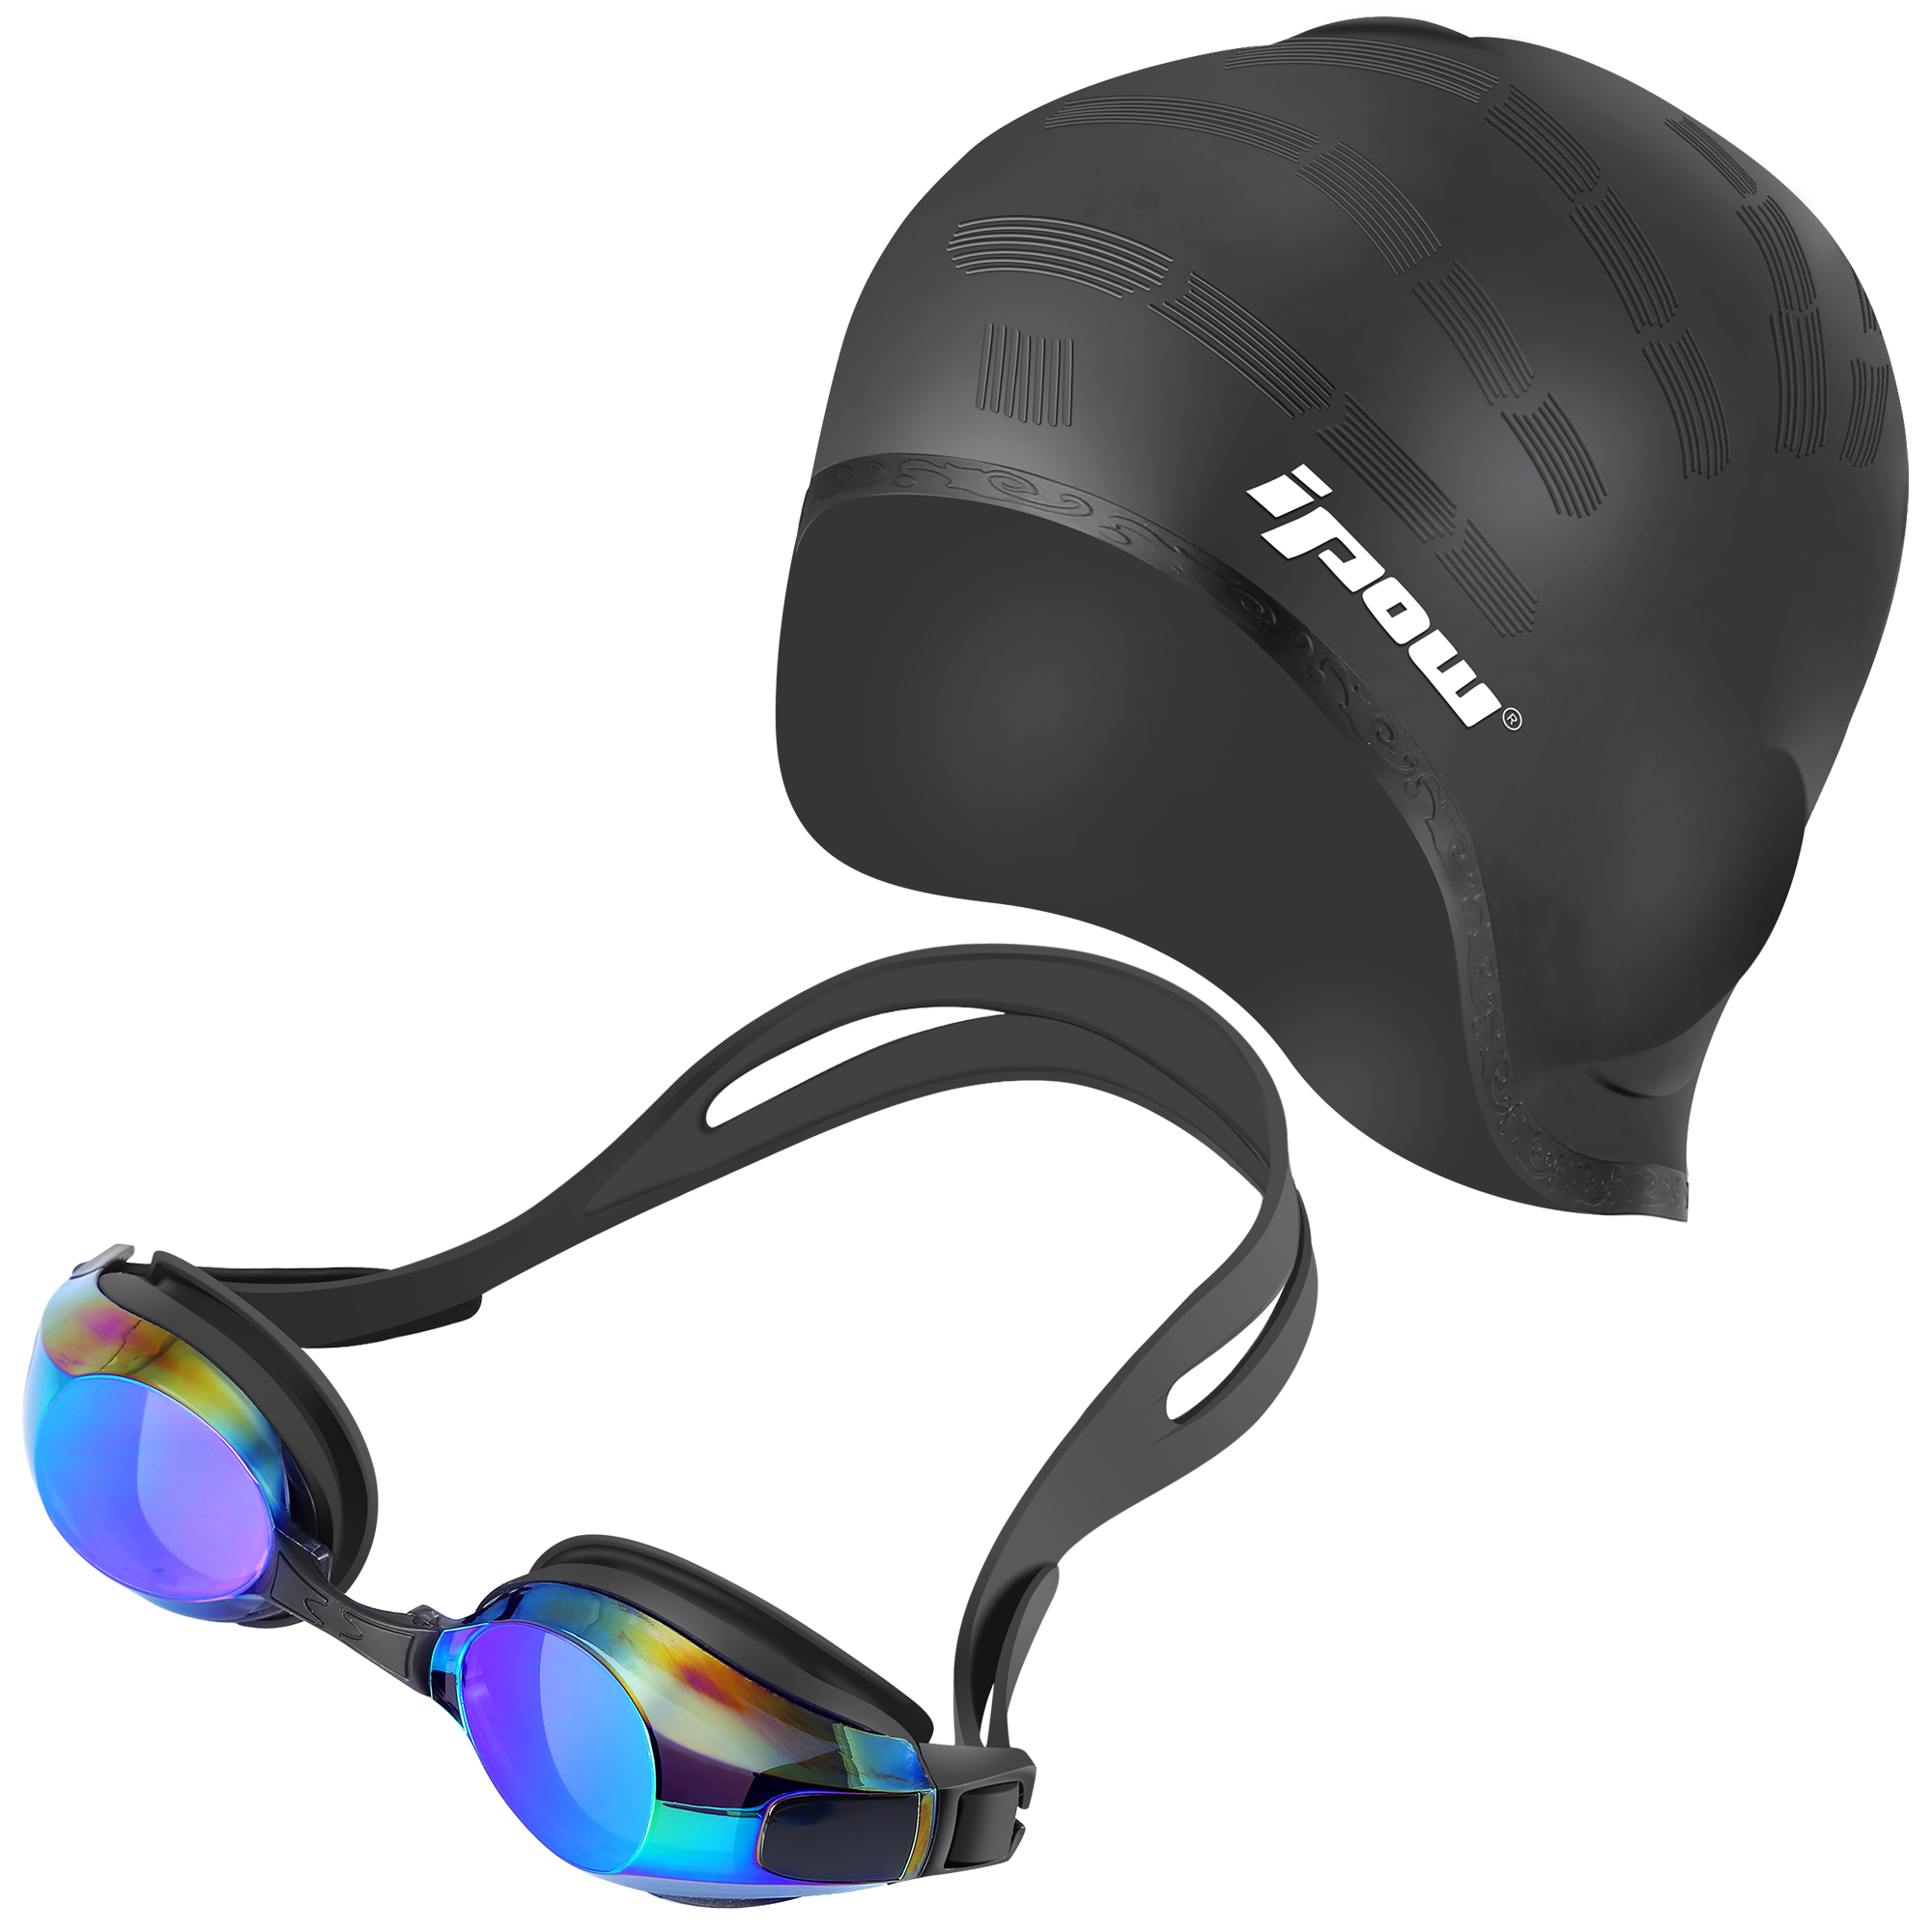 Swimming Cap and Goggles Set,IPOW Silicone Swim Cap Hat Anti-fog for Swimming Swim Goggles Waterproof Swimming Glasses Goggle Cap for Adults Women Long Hair Men Kids Girls Boys Youth, Black